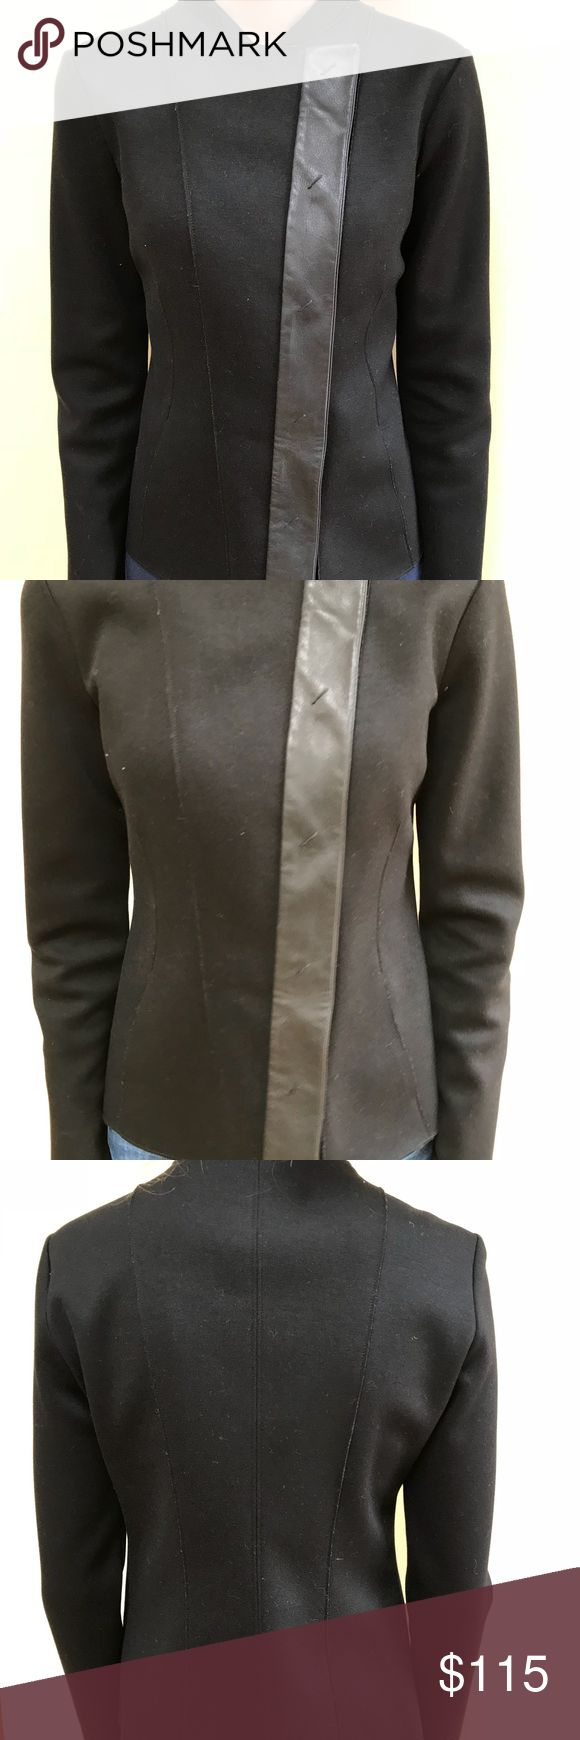 Emporio Armani Jacket Only worn once! Retail: $850. Black color Emporio Armani Jackets & Coats Blazers